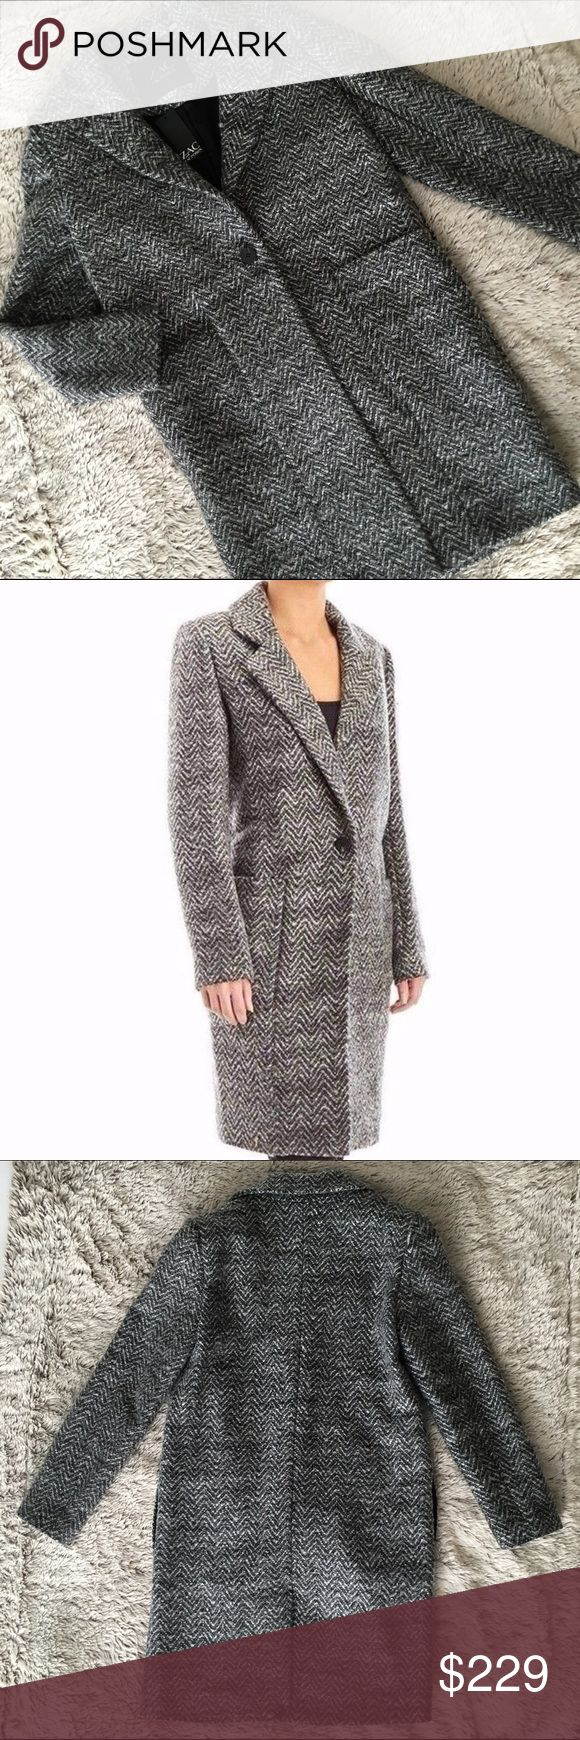 """NWT- Zac Posen Boyfriend Coat New w tags. A Zac Zac Posen boyfriend style 'Giselle' coat in 'moonstone', a herringbone print.  The boyfriend style fit has a slim straight cut and one button closure.  A notched collar with 2 front patch pockets and 2 side pockets.  Black lining throughout. Back vent(unopened). Approx 38"""" length. Sleeves are approx. 33"""". Gorgeous for Fall💕 Zac Posen Jackets & Coats"""